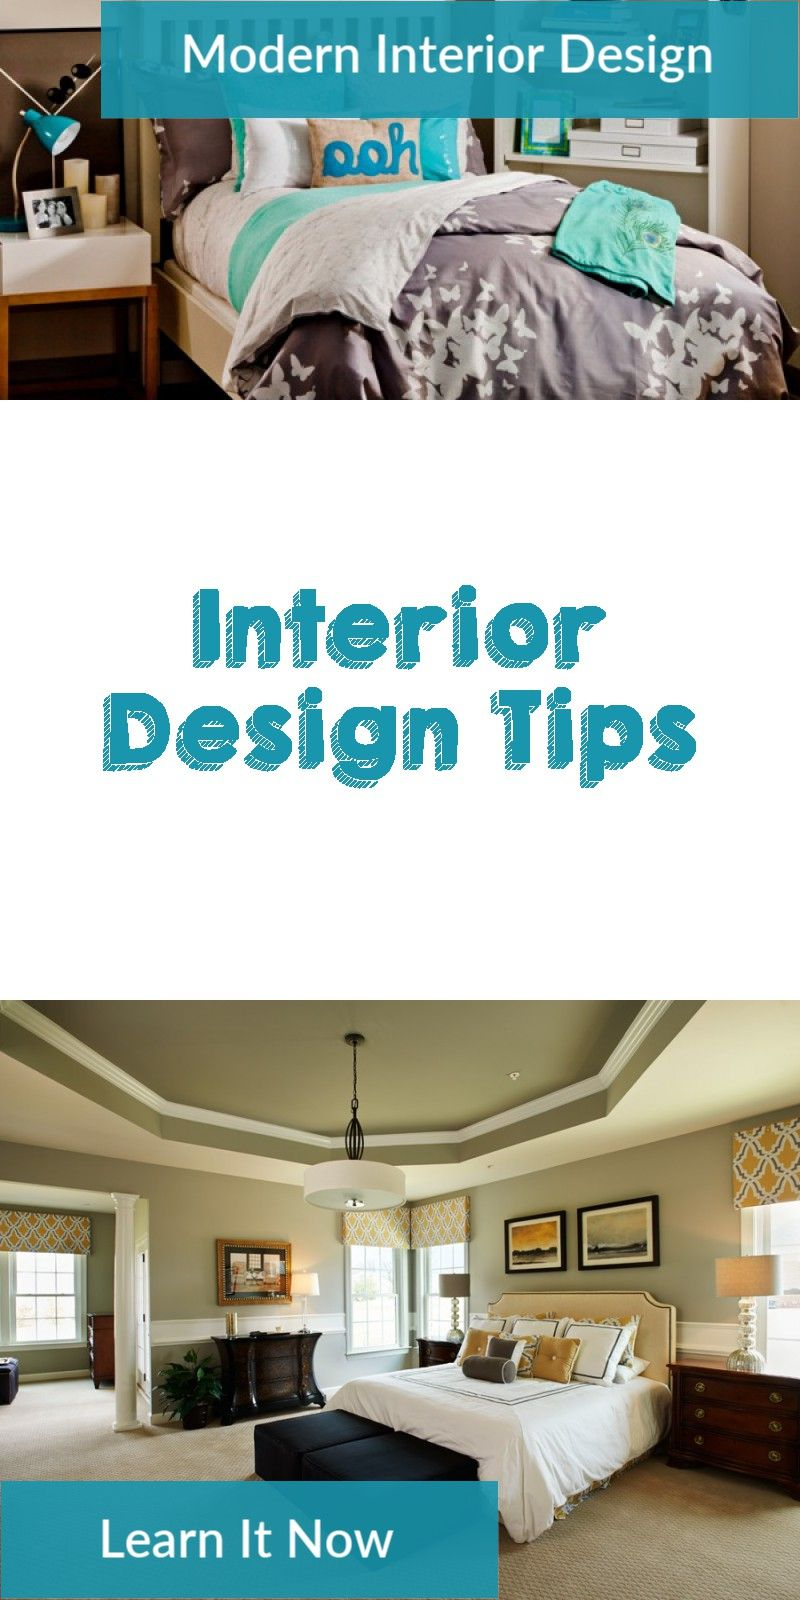 Interior design home interior design tricks that you must know check out this great article interiordesign grateful homedecor useful